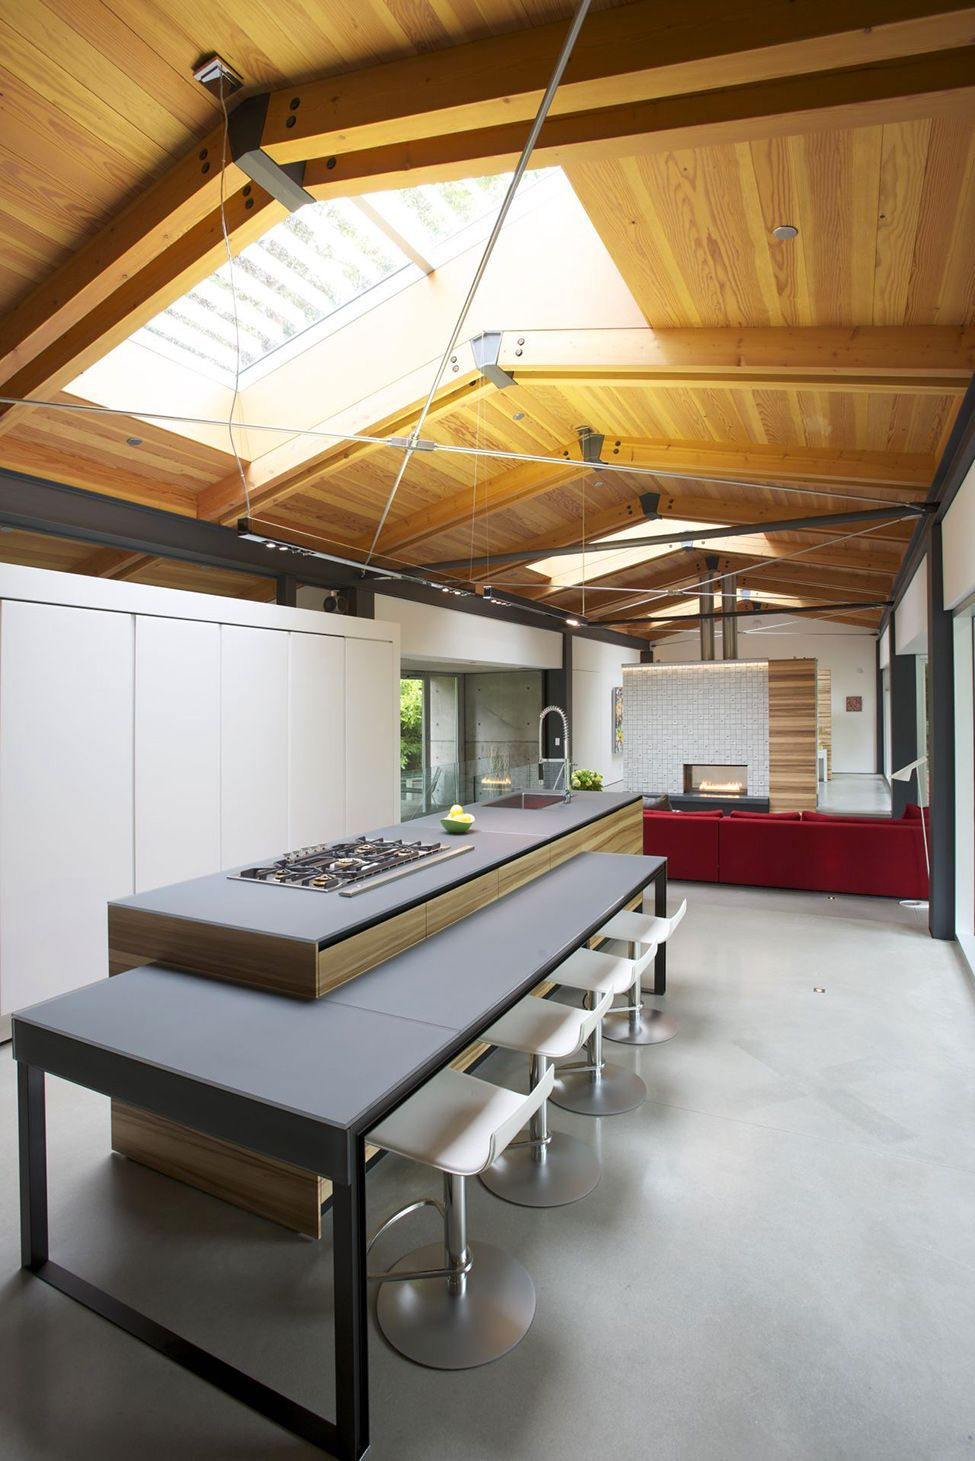 Southlands residence surrounded by lush vegetation in vancouver designed by dialog